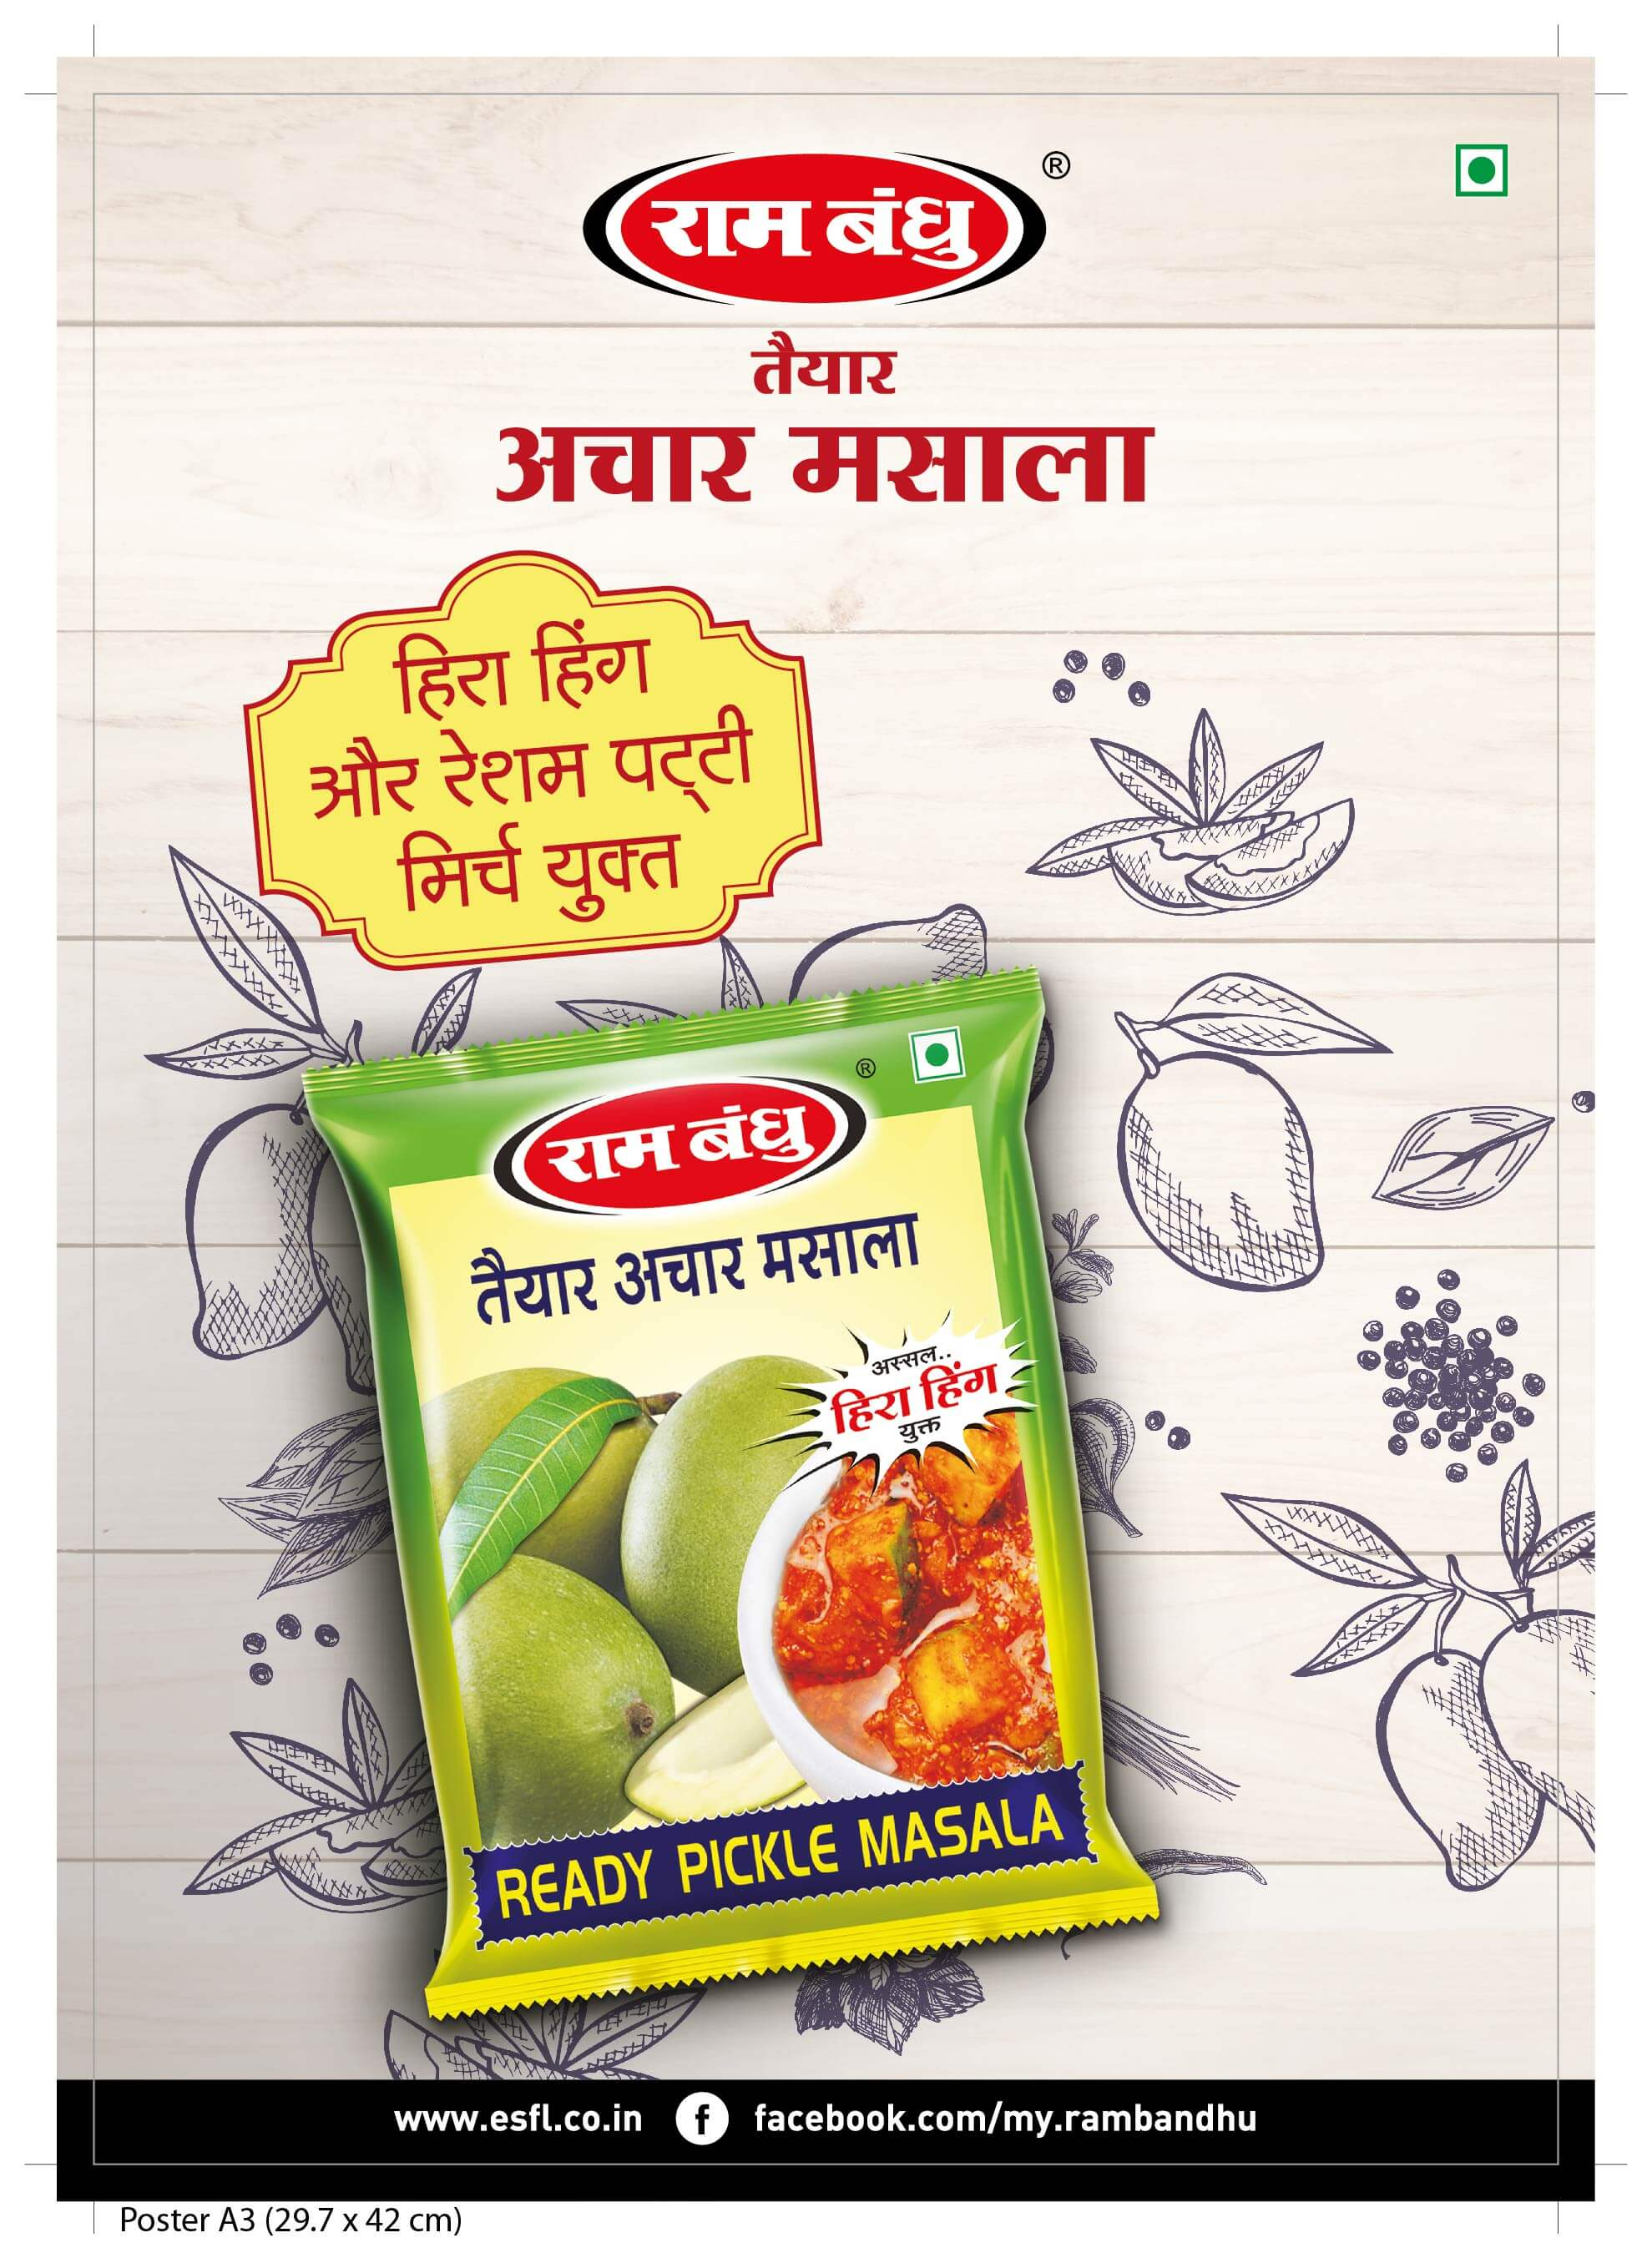 Pickle Masala Campaign